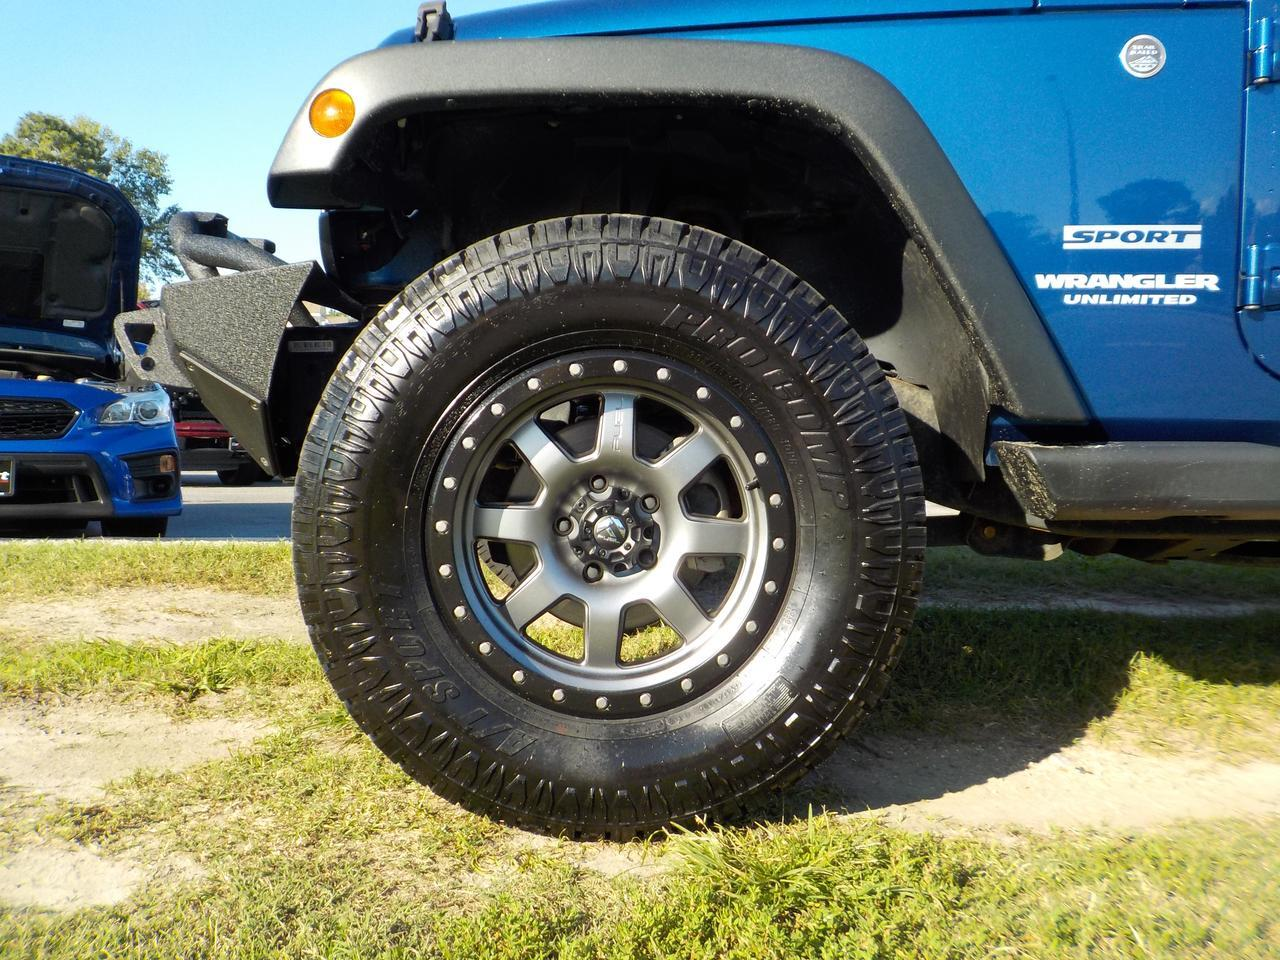 2010 JEEP WRANGLER UNLIMITED SPORT 4X4, FUEL WHEELS, HARD TOP, TOW PACKAGE, BRUSH GUARD, ONLY 31K MILES! Virginia Beach VA